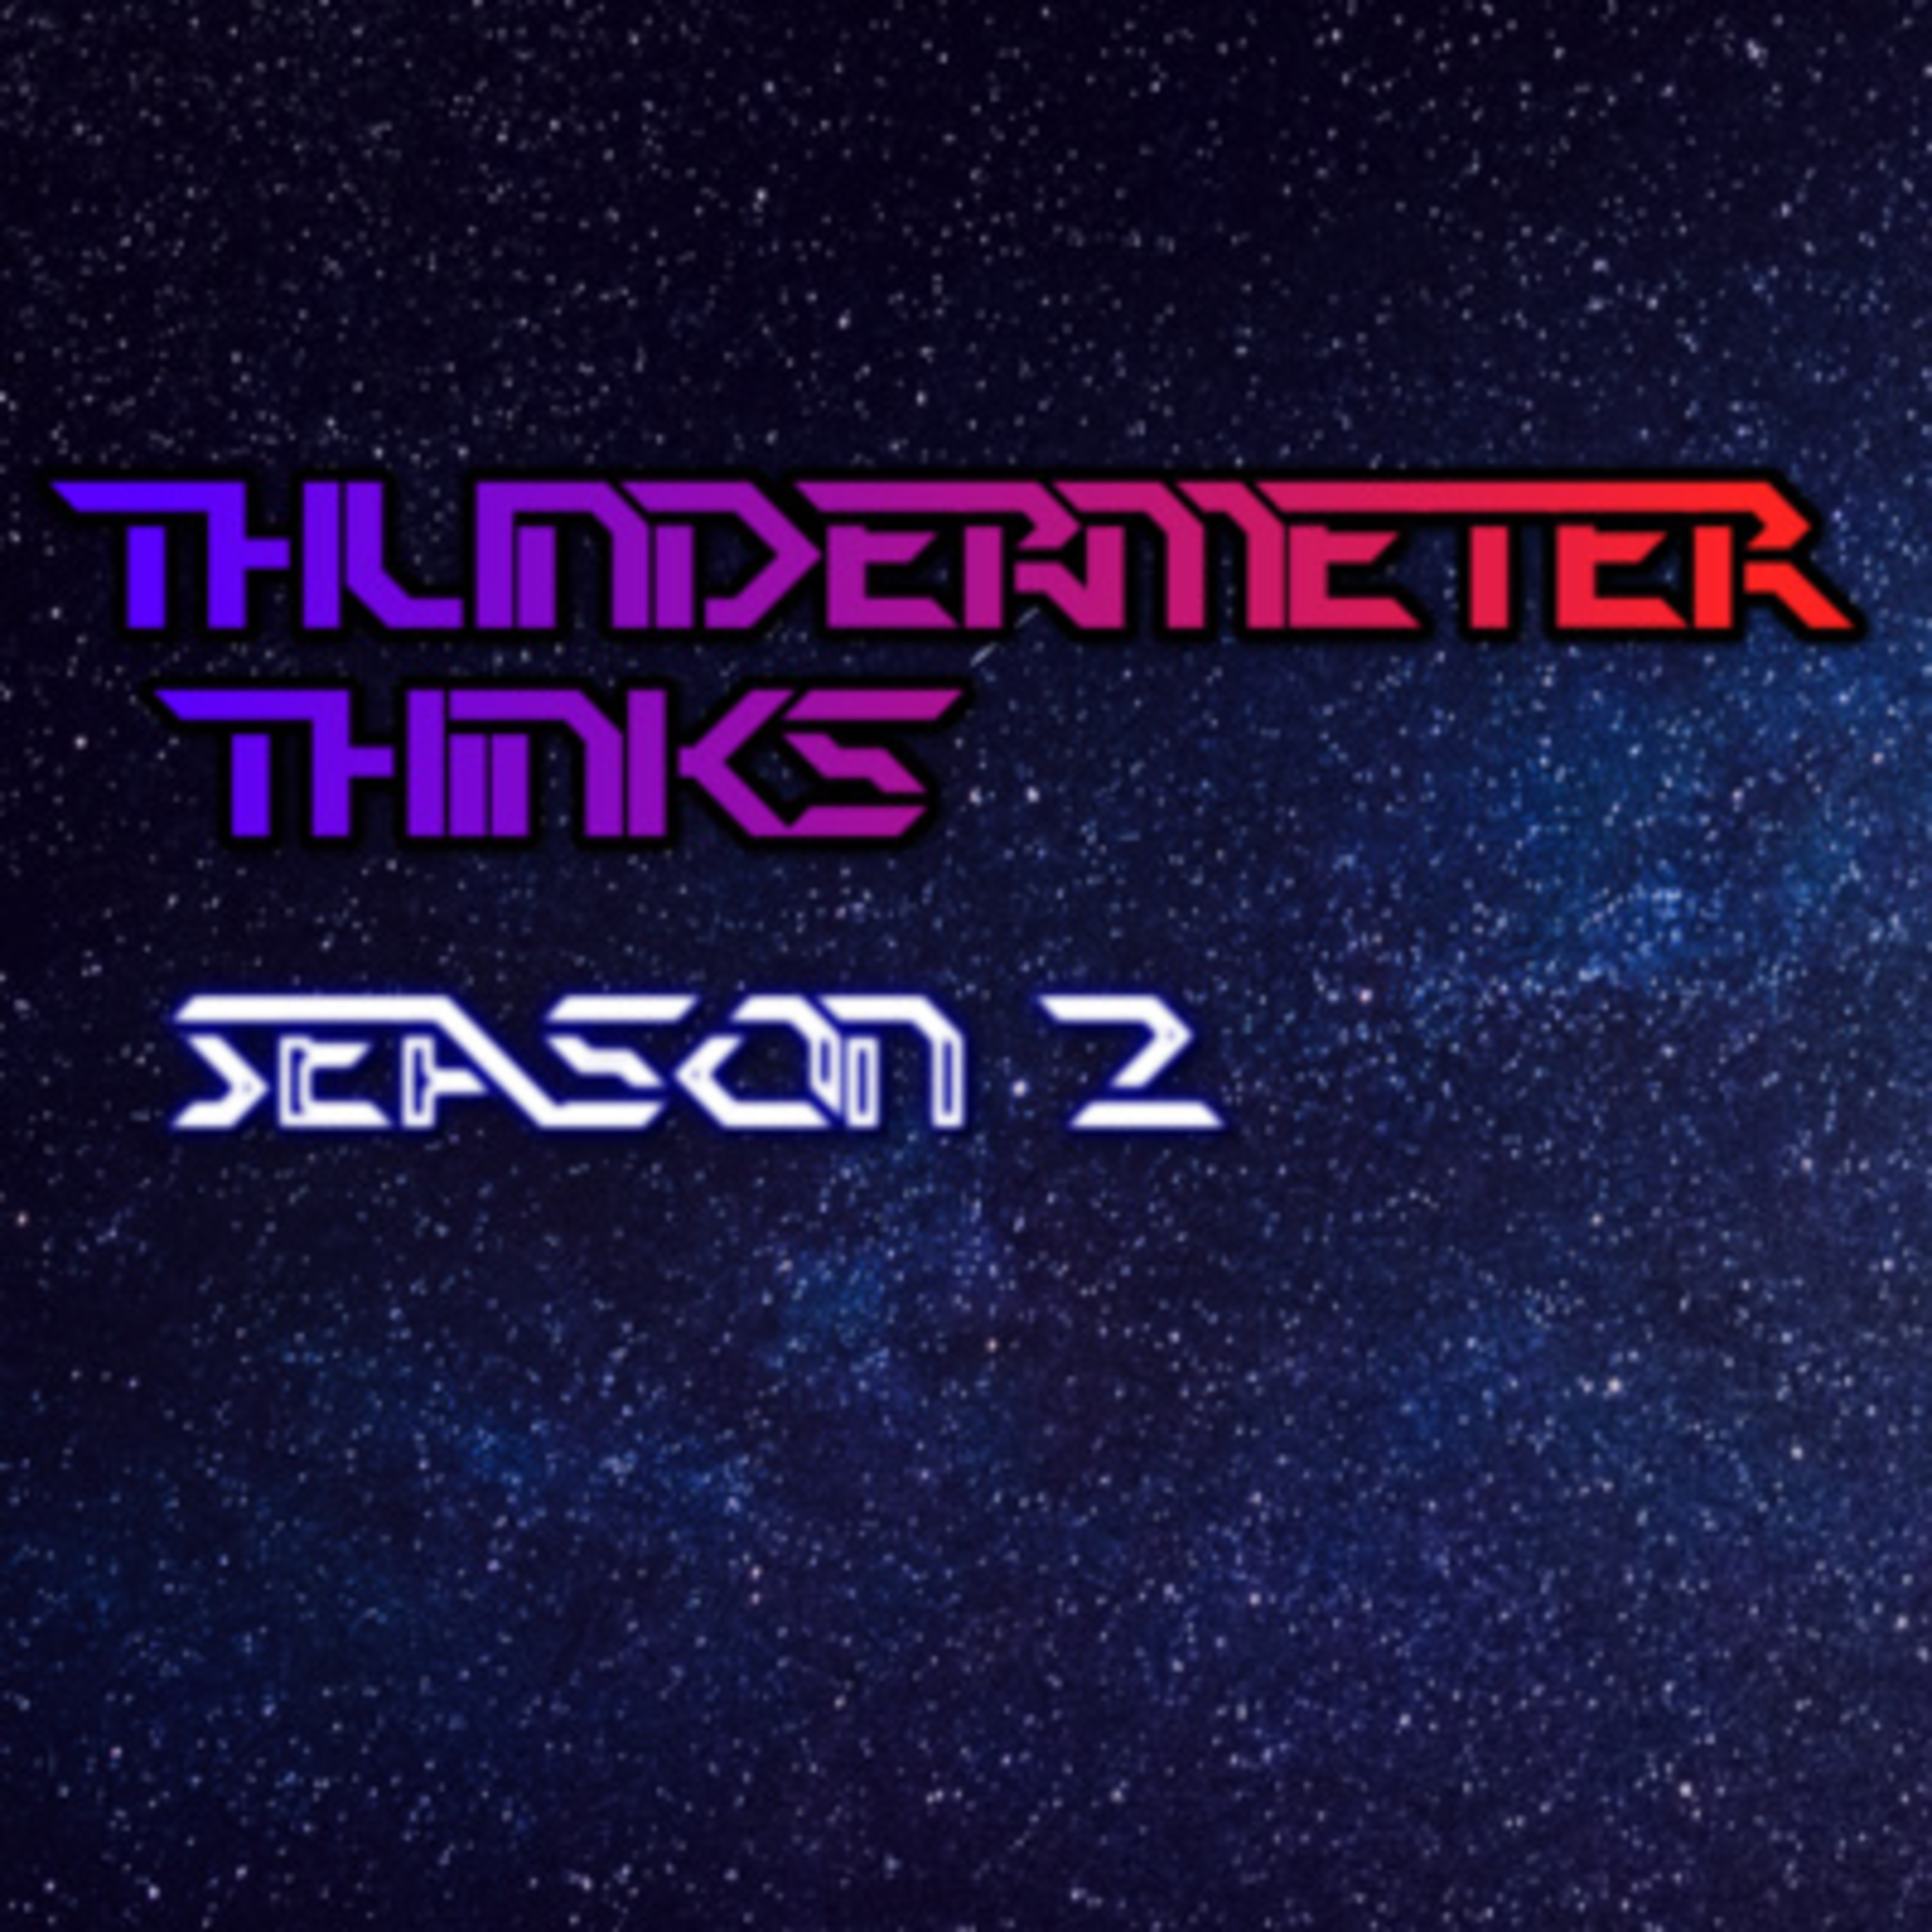 S2 Episode 7 What Is the meaning of Life